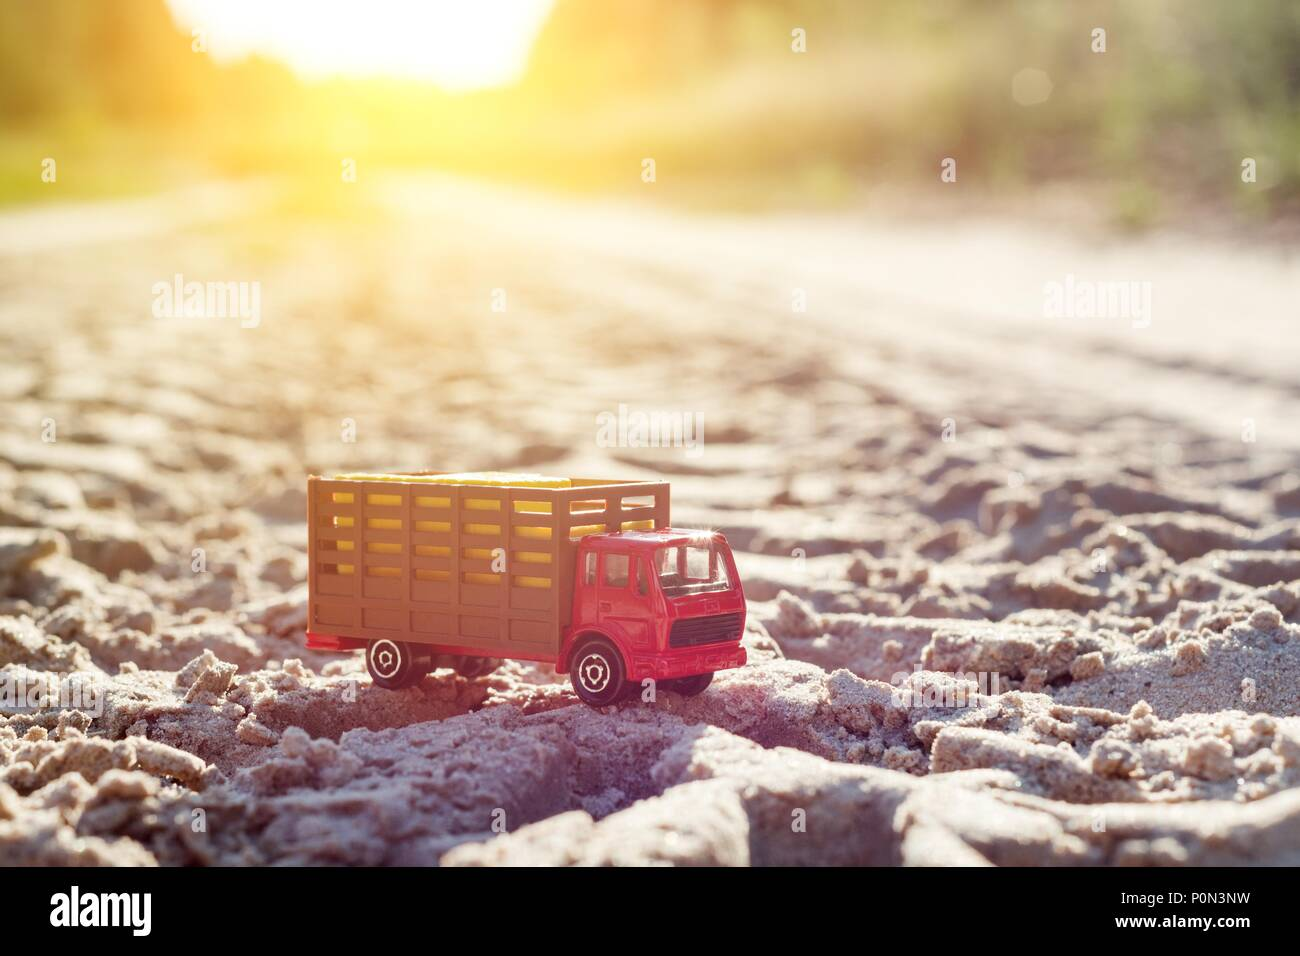 Toy Retro Truck On The Road A Symbol Of Cargo Transportation Stock